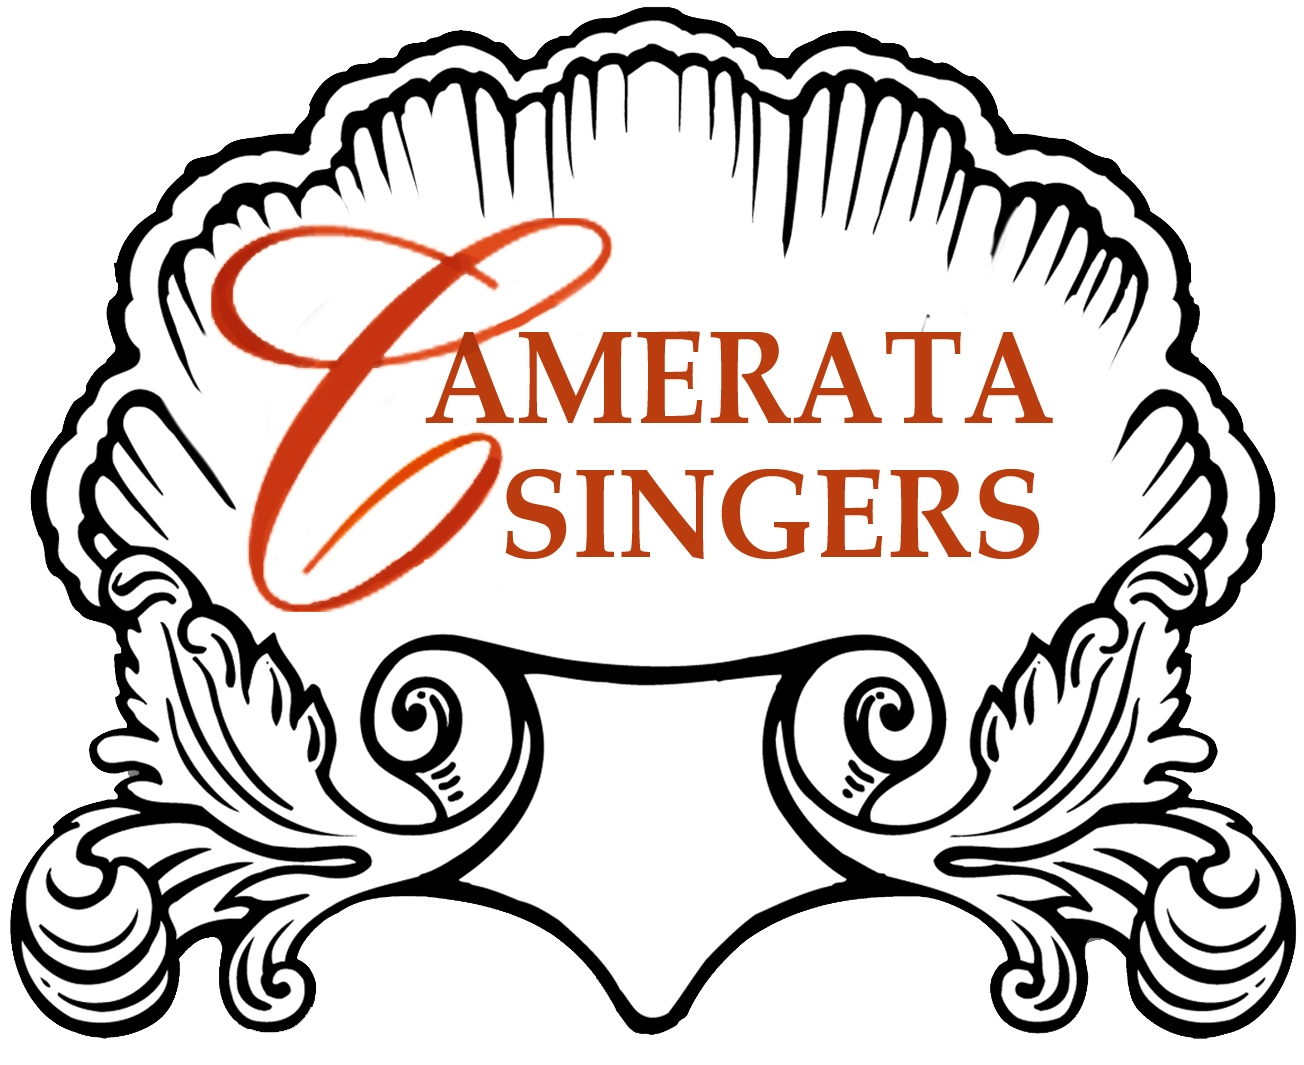 Camerata Singers of Monterey County